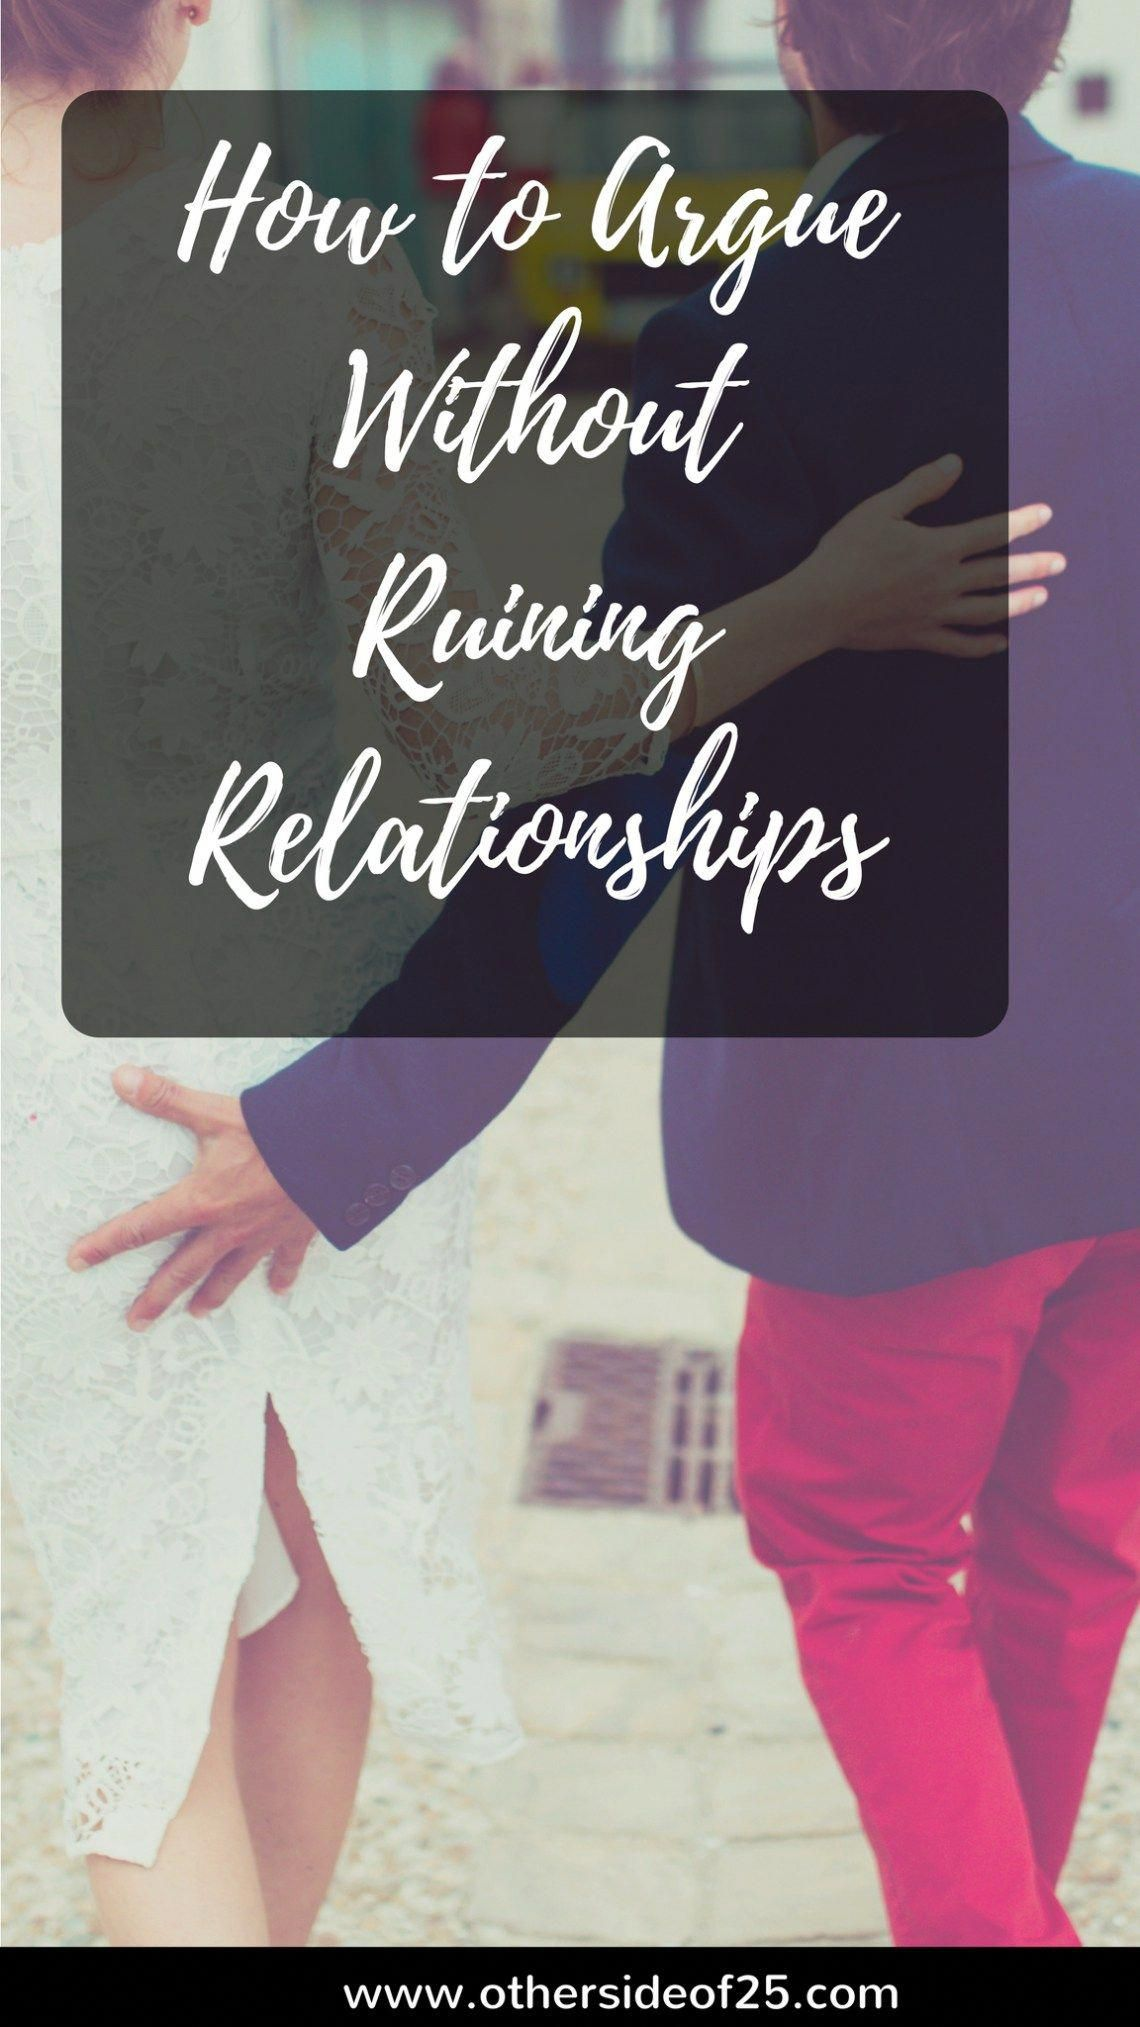 How To Argue Without Ruining Relationships #